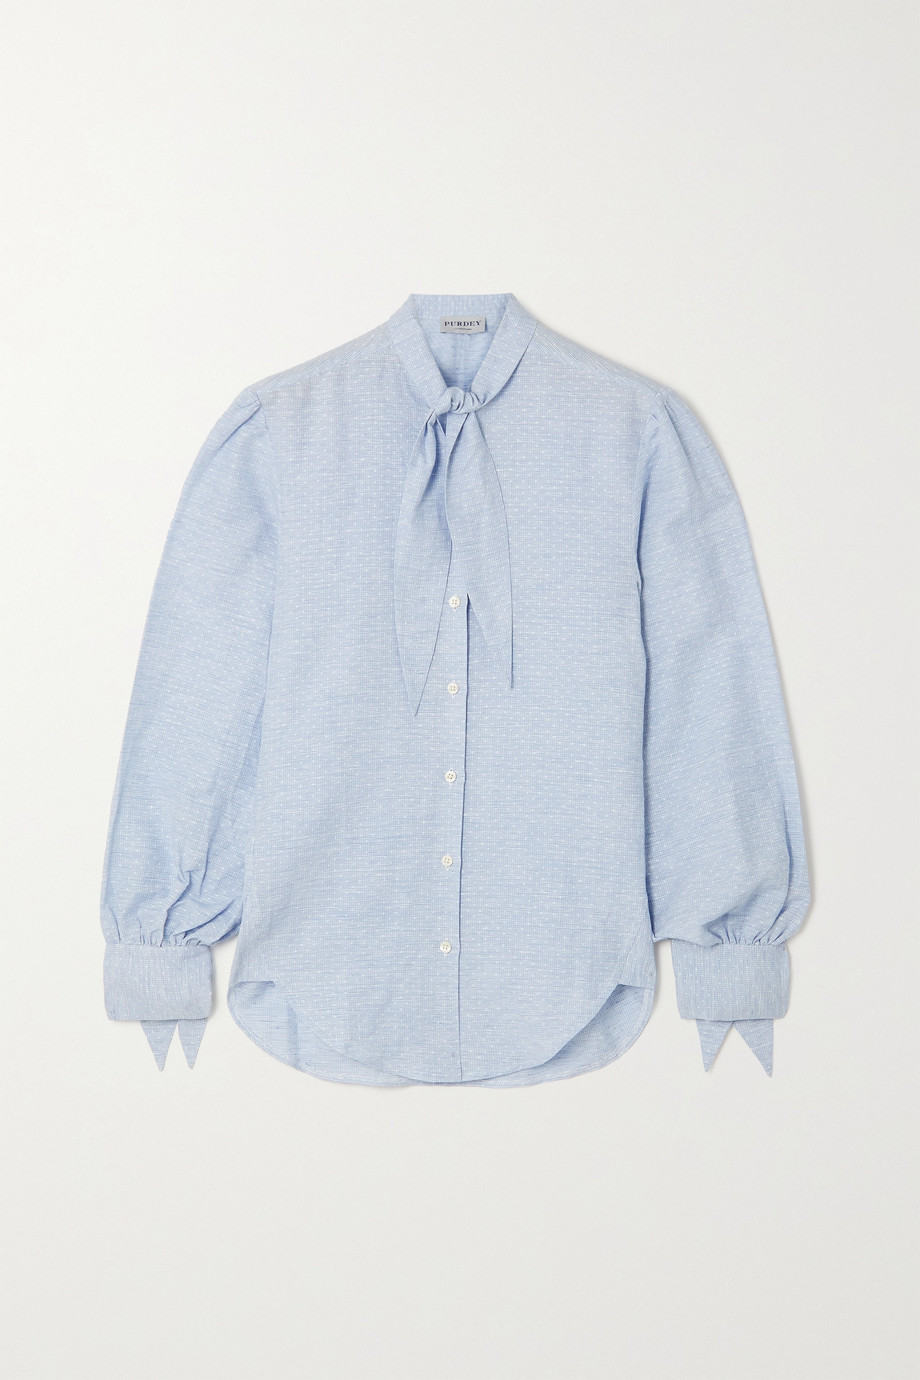 PURDEY Tie-detailed linen and cotton-blend jacquard shirt